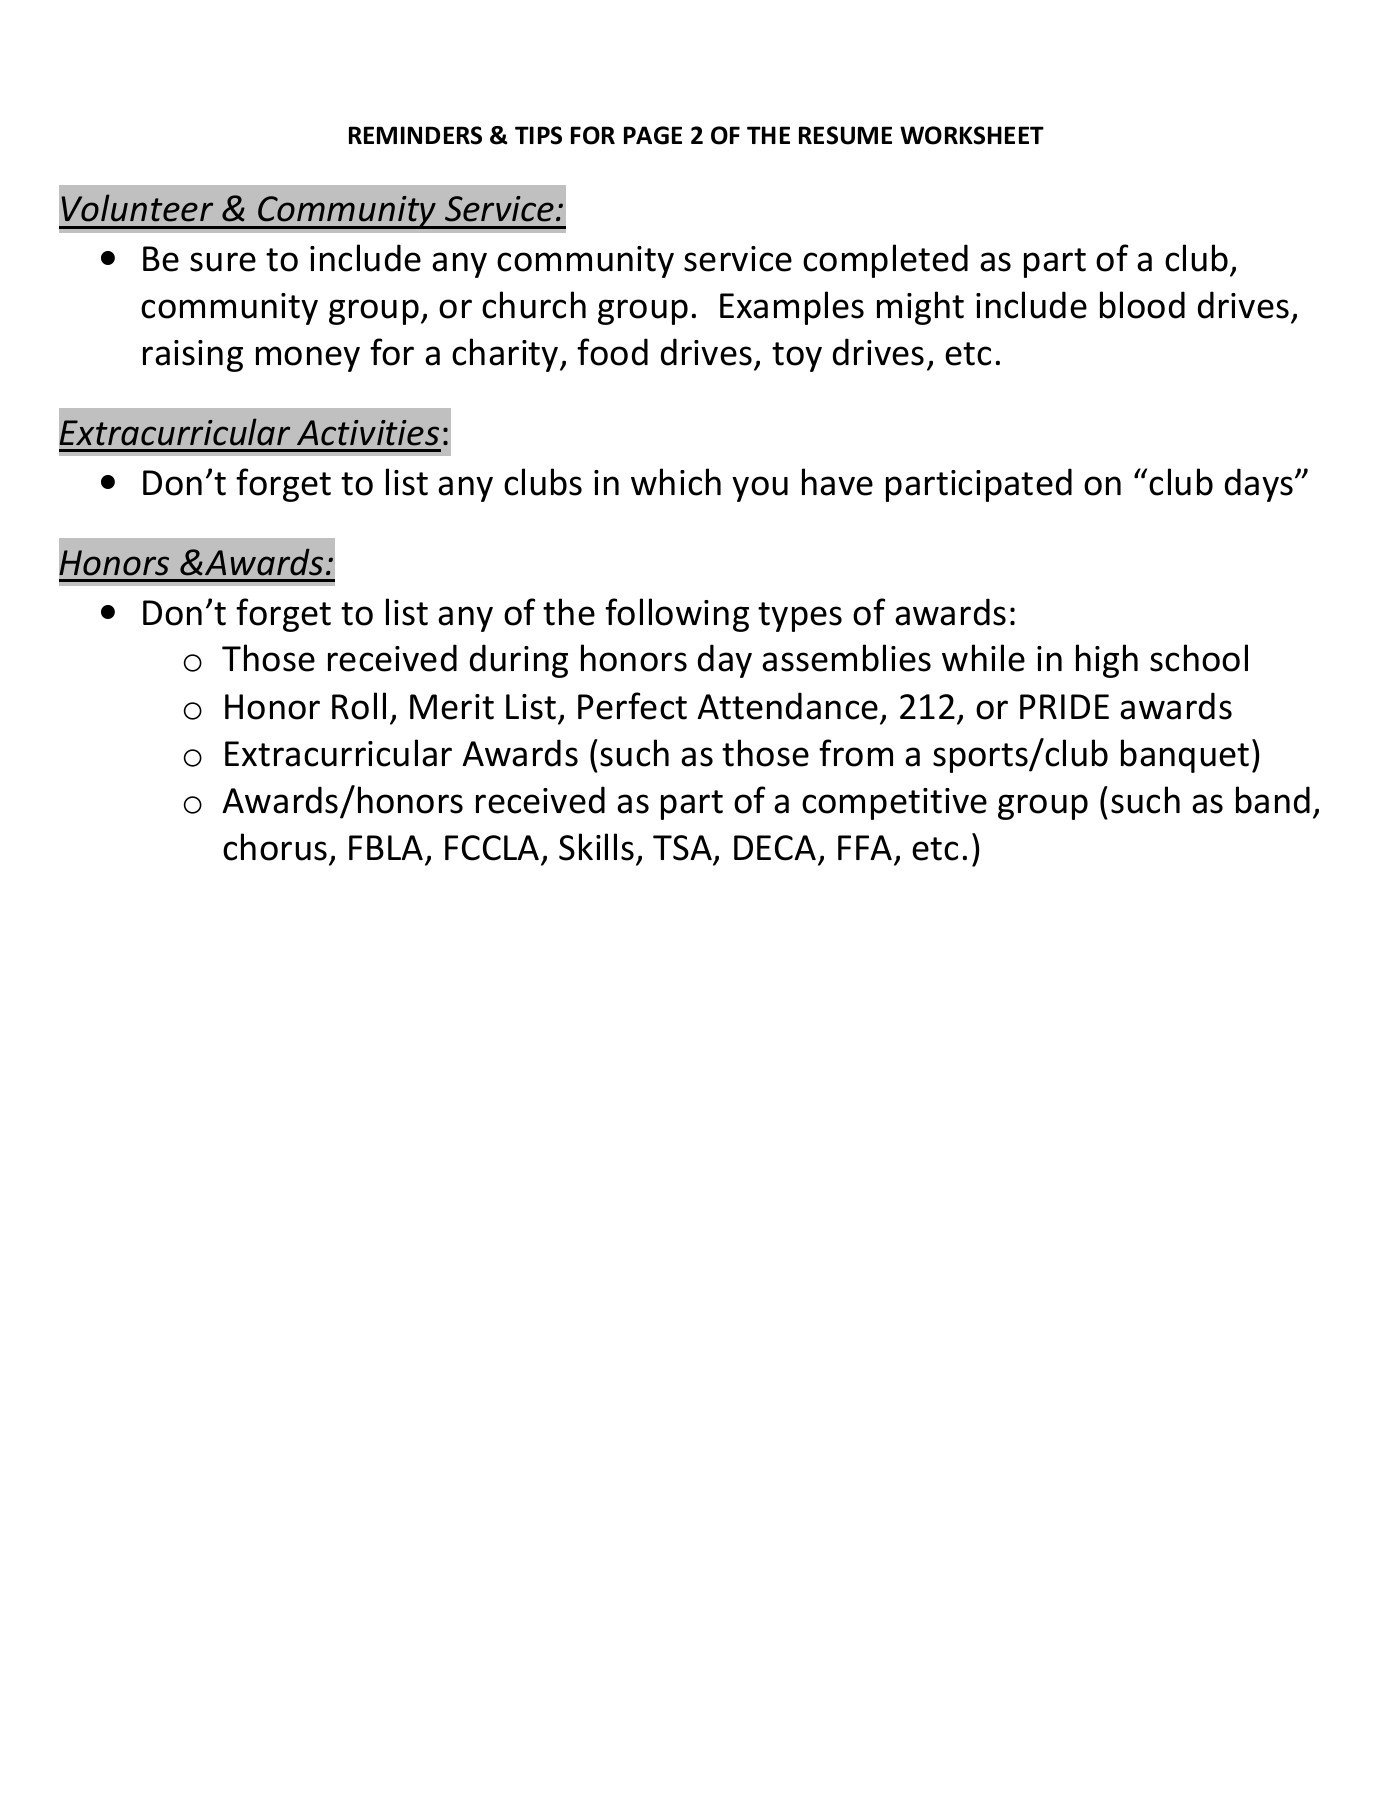 Middle School Resume Worksheet Resume Pages 1 4 Text Version